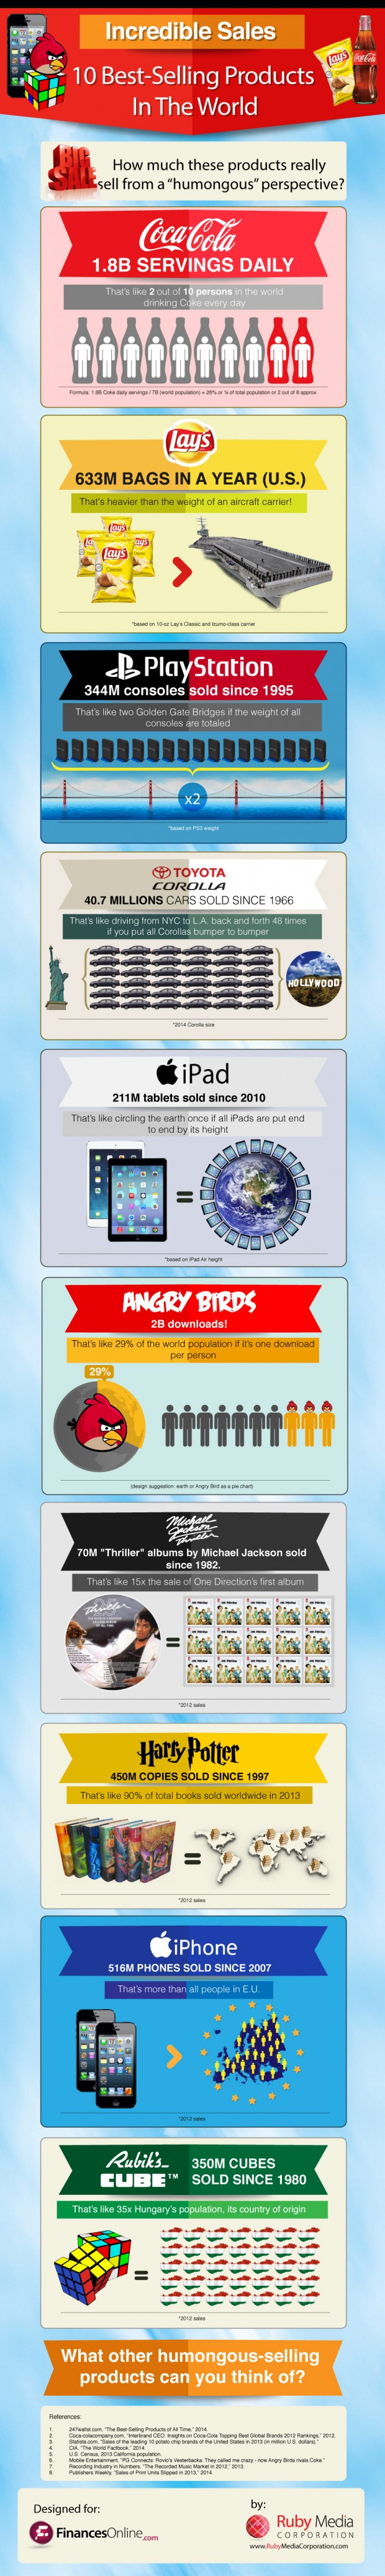 best-selling-products-infographic